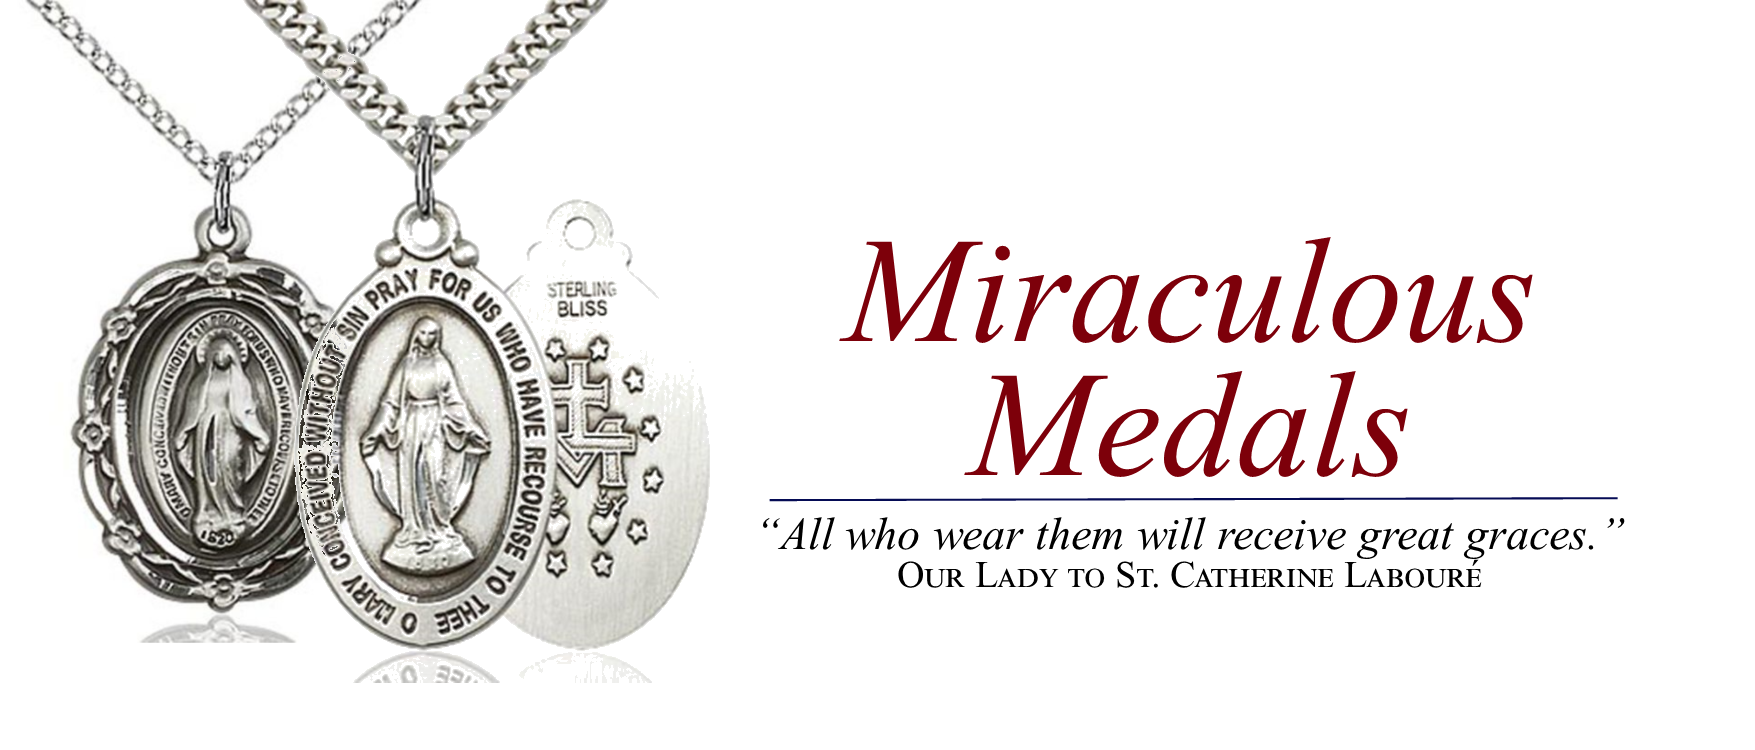 6 Miraculous Medals - Home Page Sliders